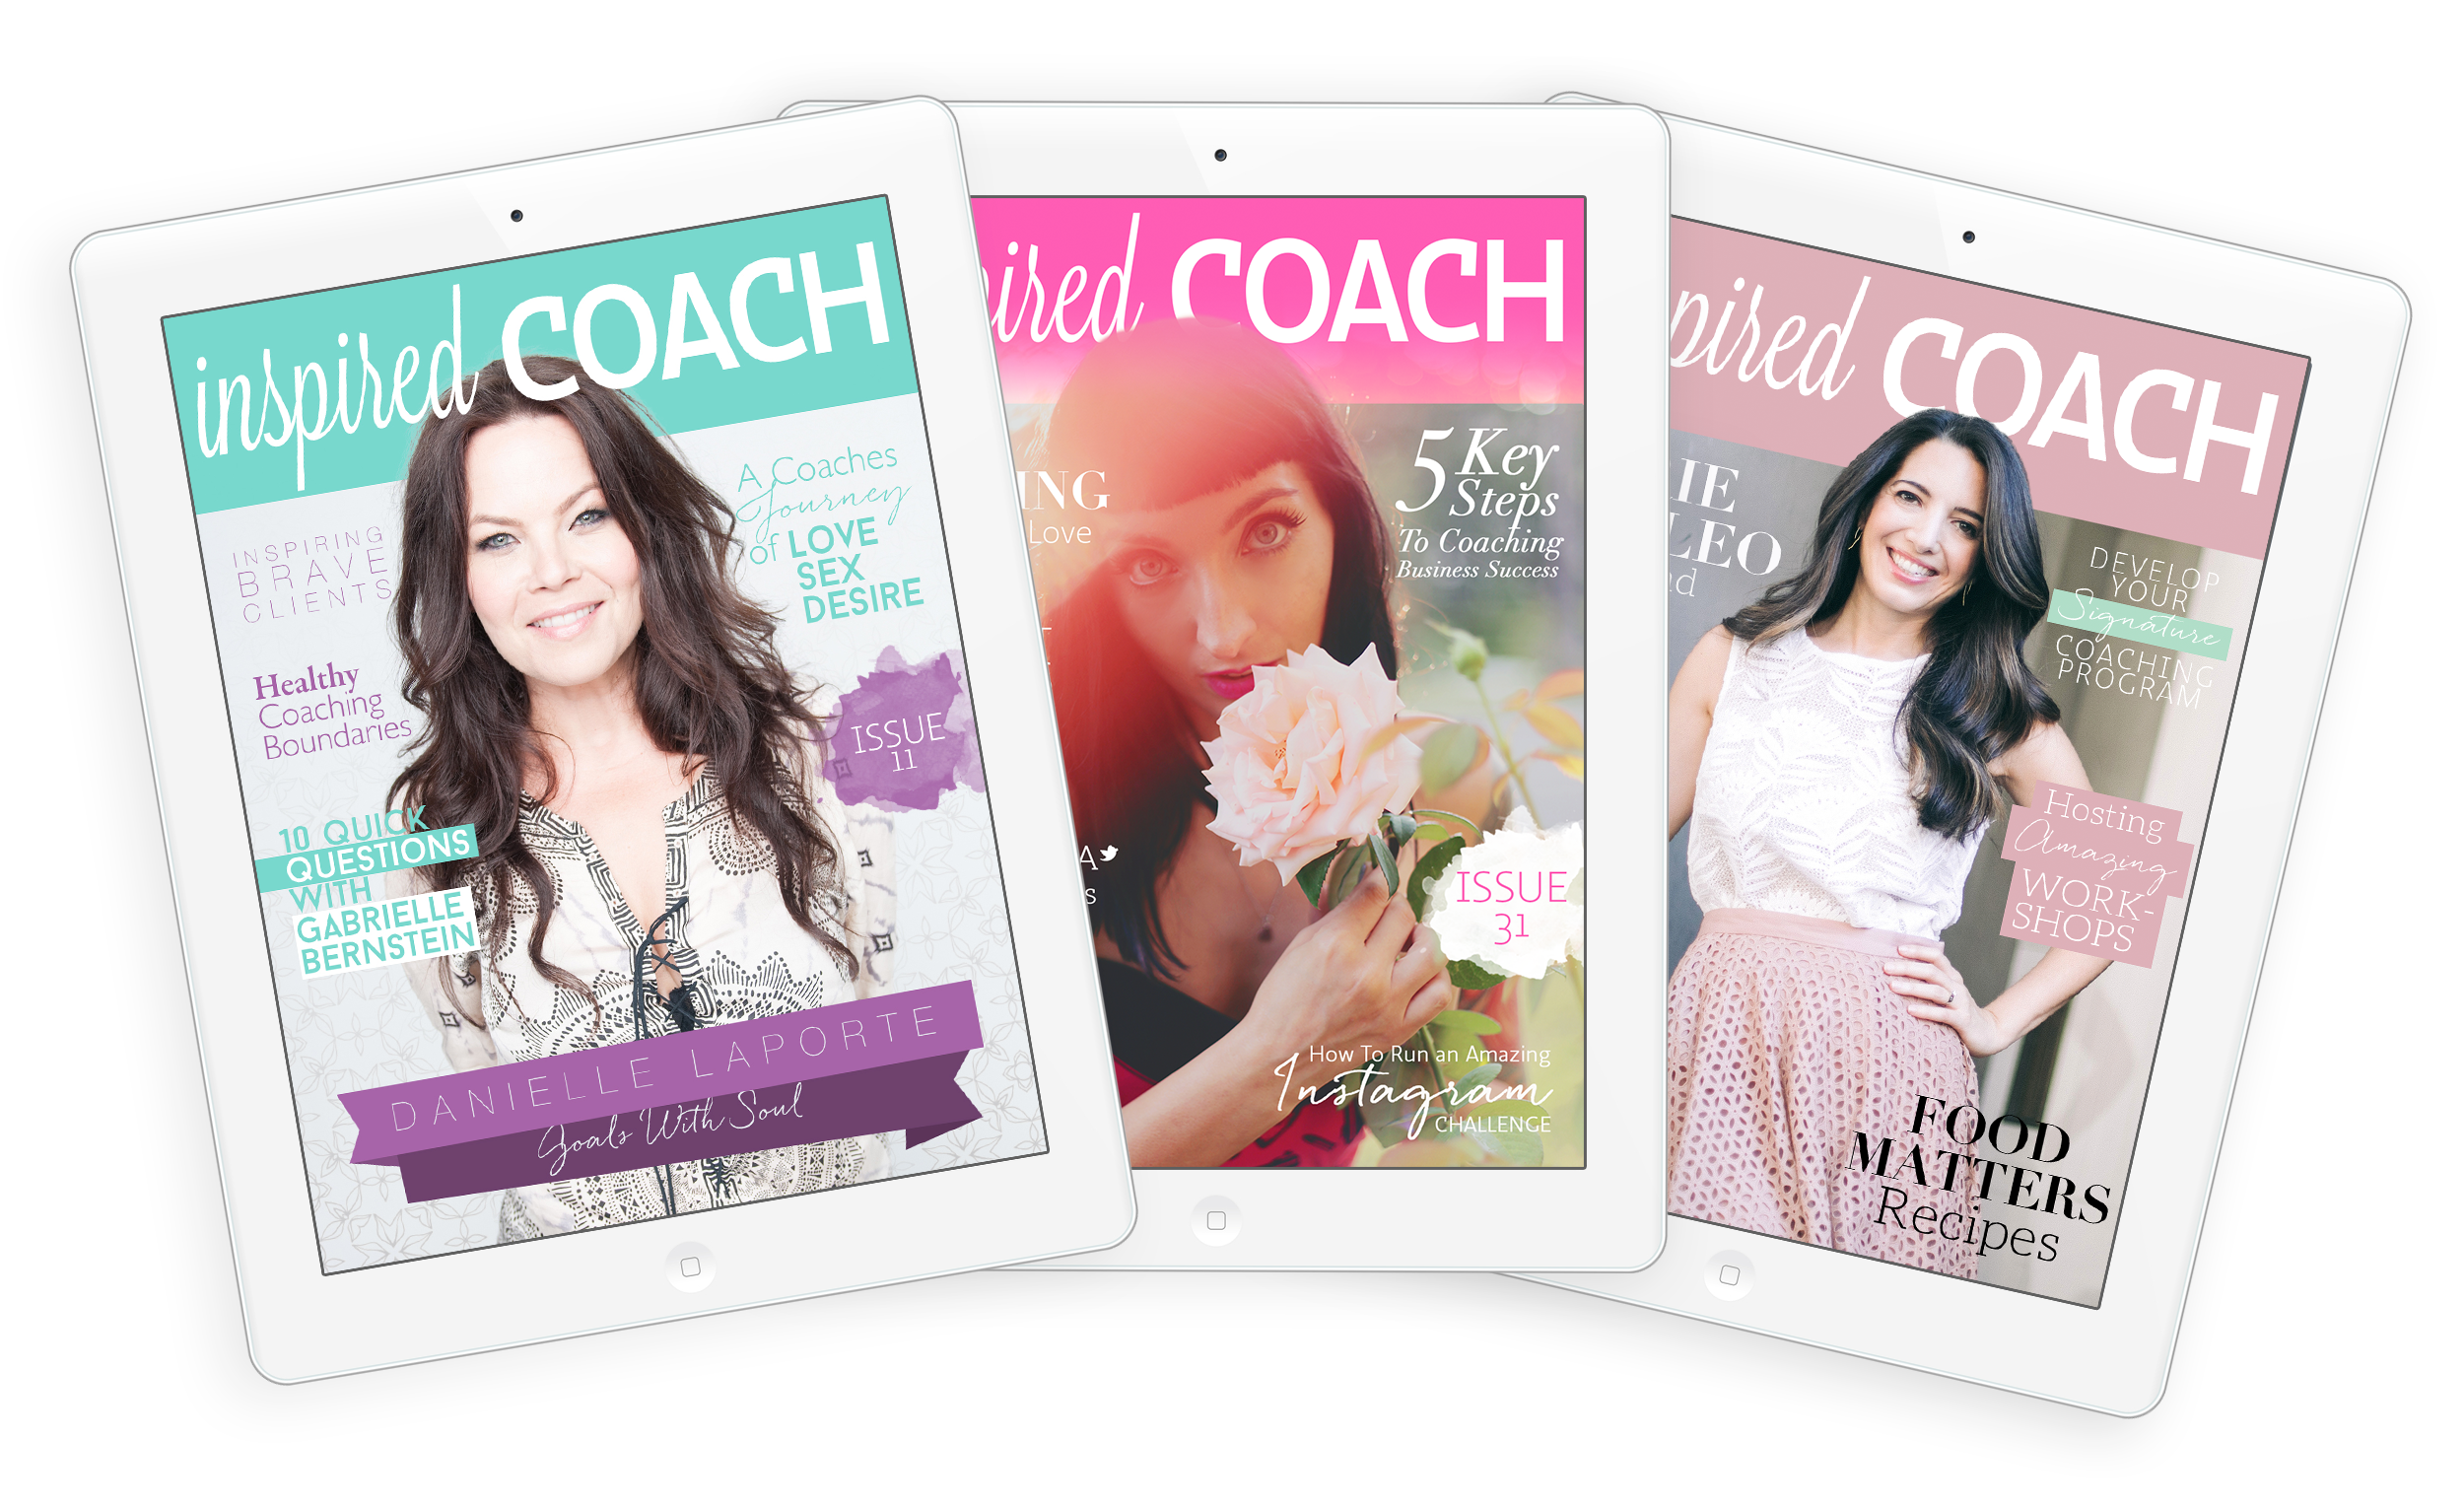 inspired COACH Magazine